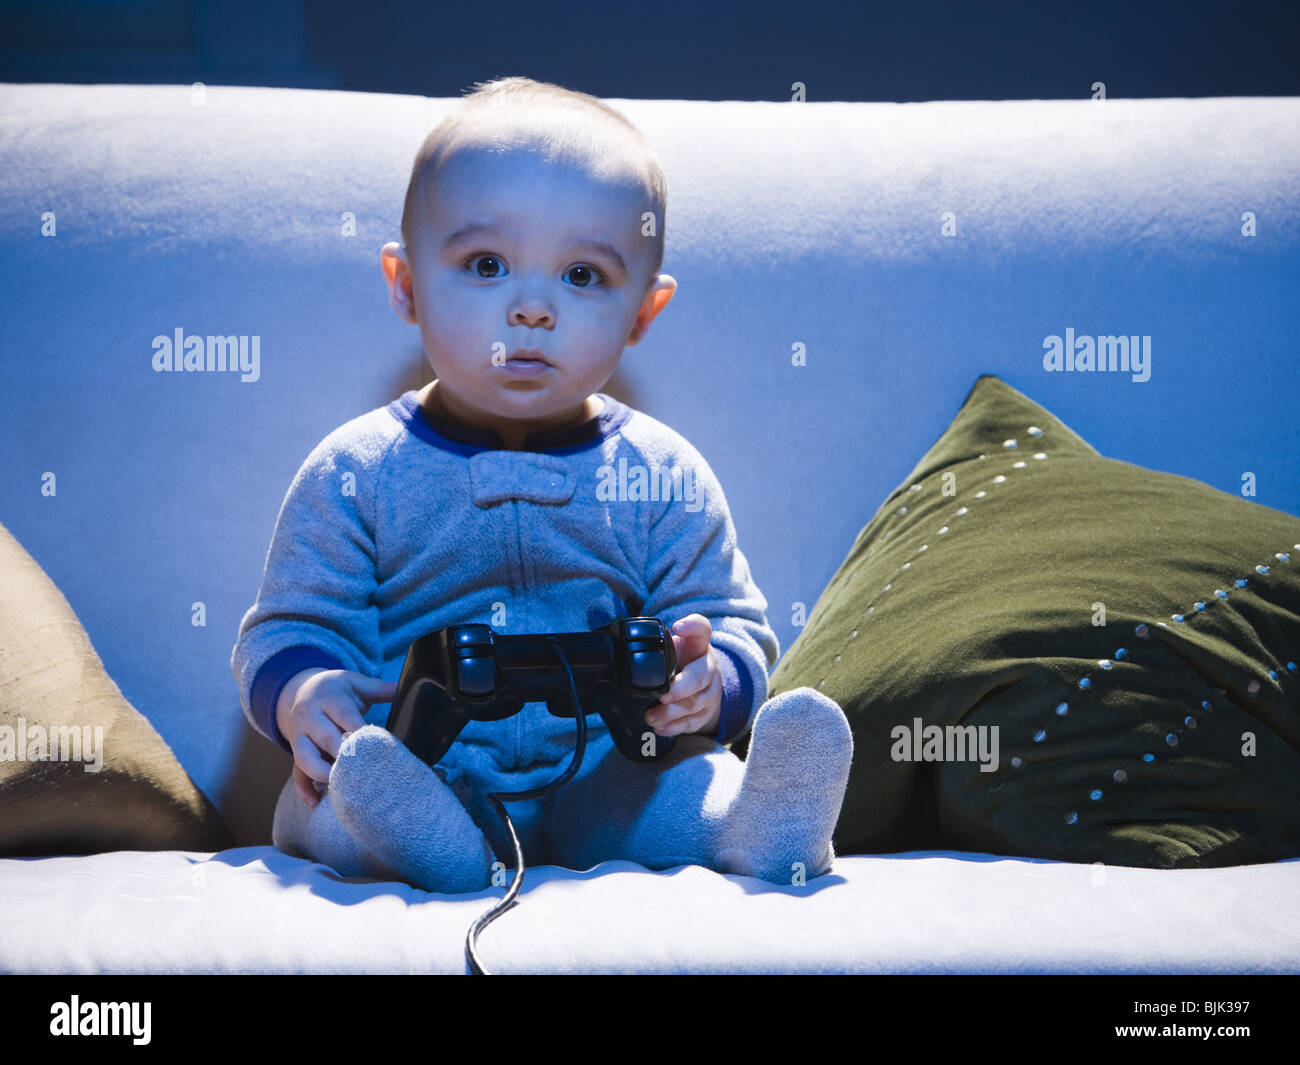 Baby on sofa with video game controller - Stock Image